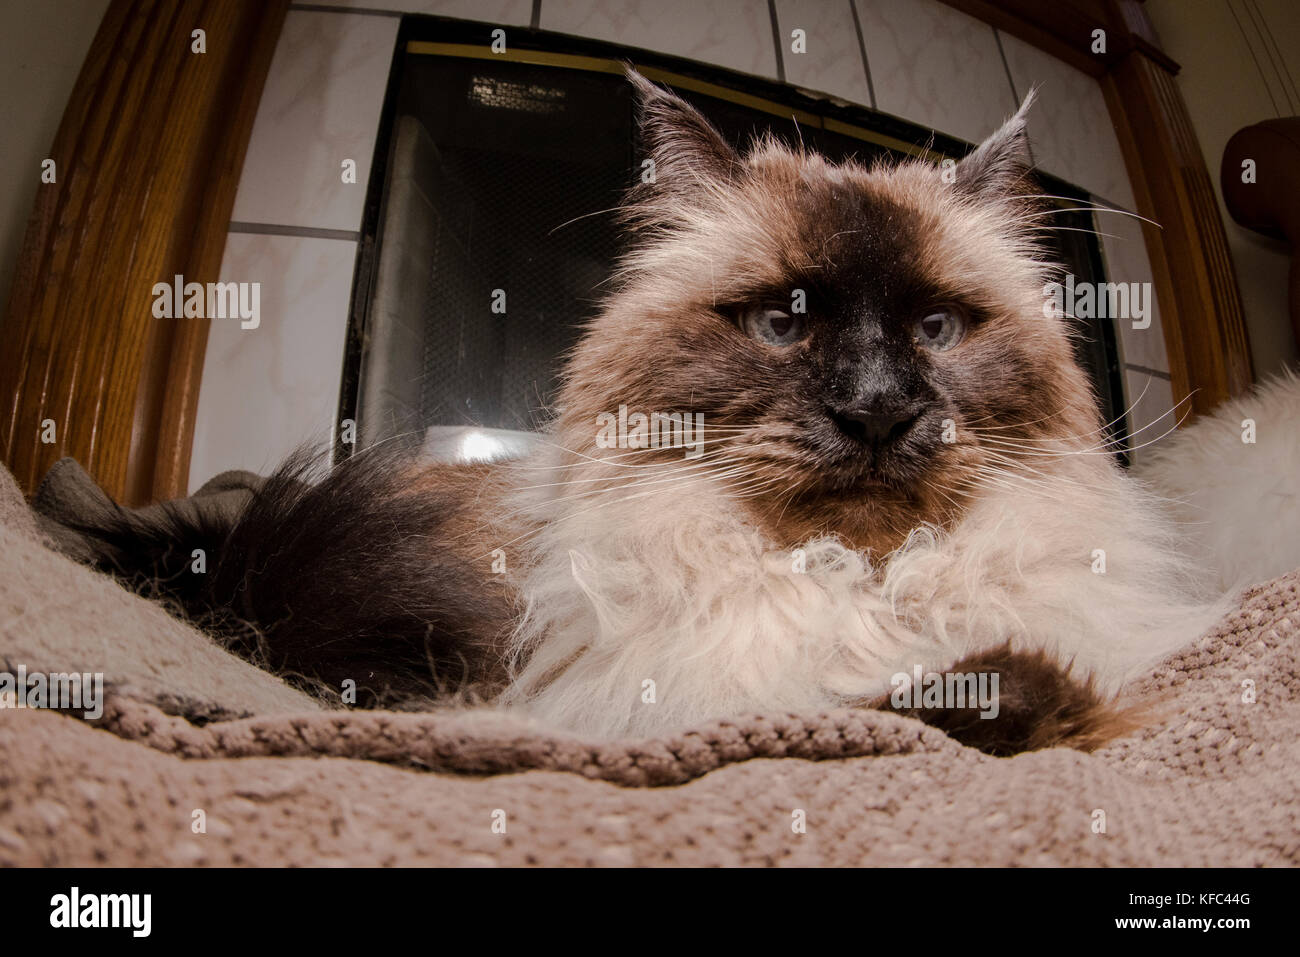 A beautiful Himalayan siamese cat in the living room. - Stock Image